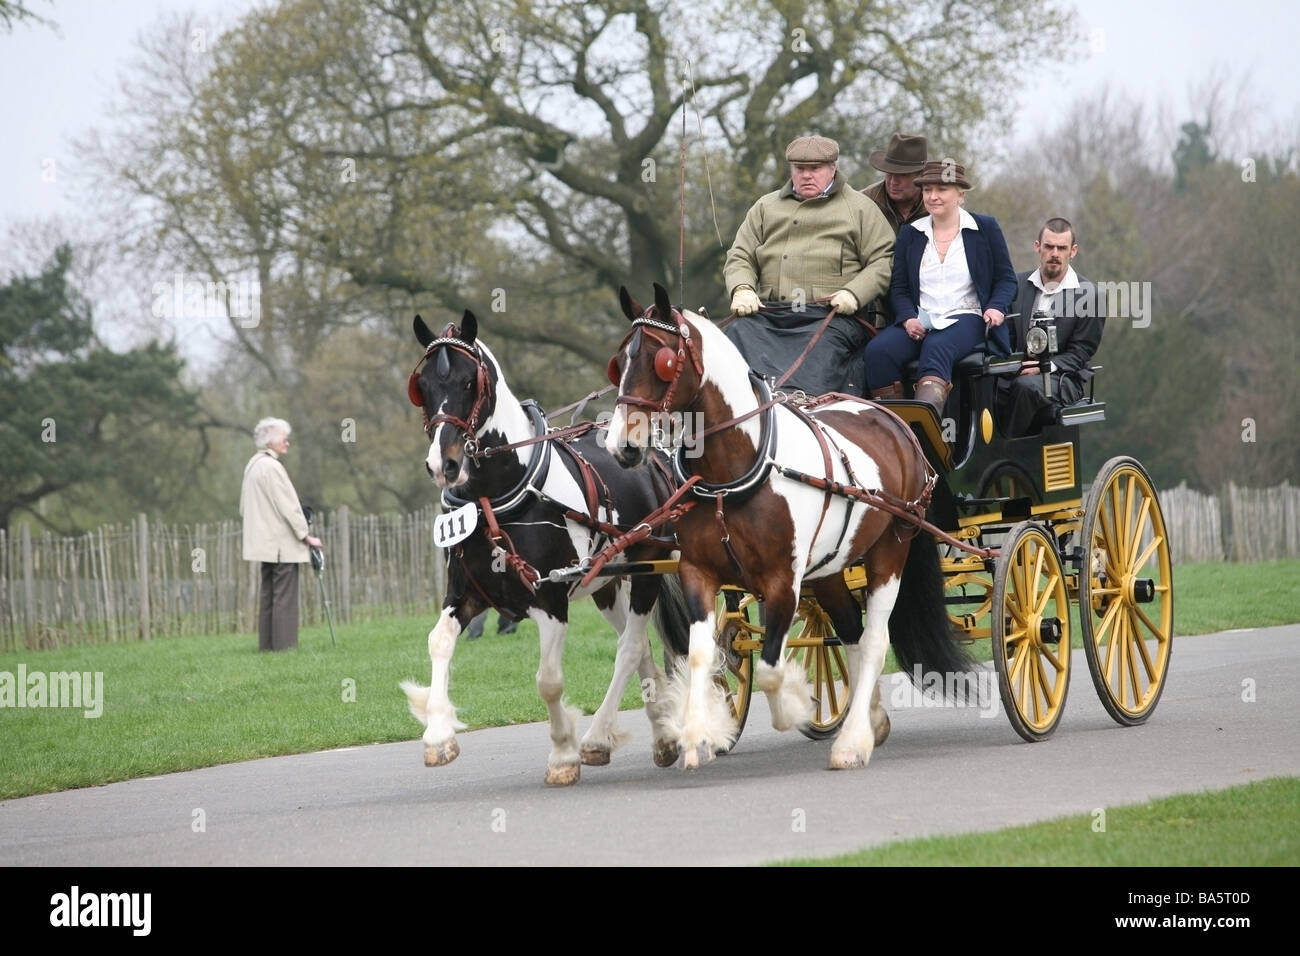 Horses pulling a carriage at the London Harness Horse Parade - Stock Image